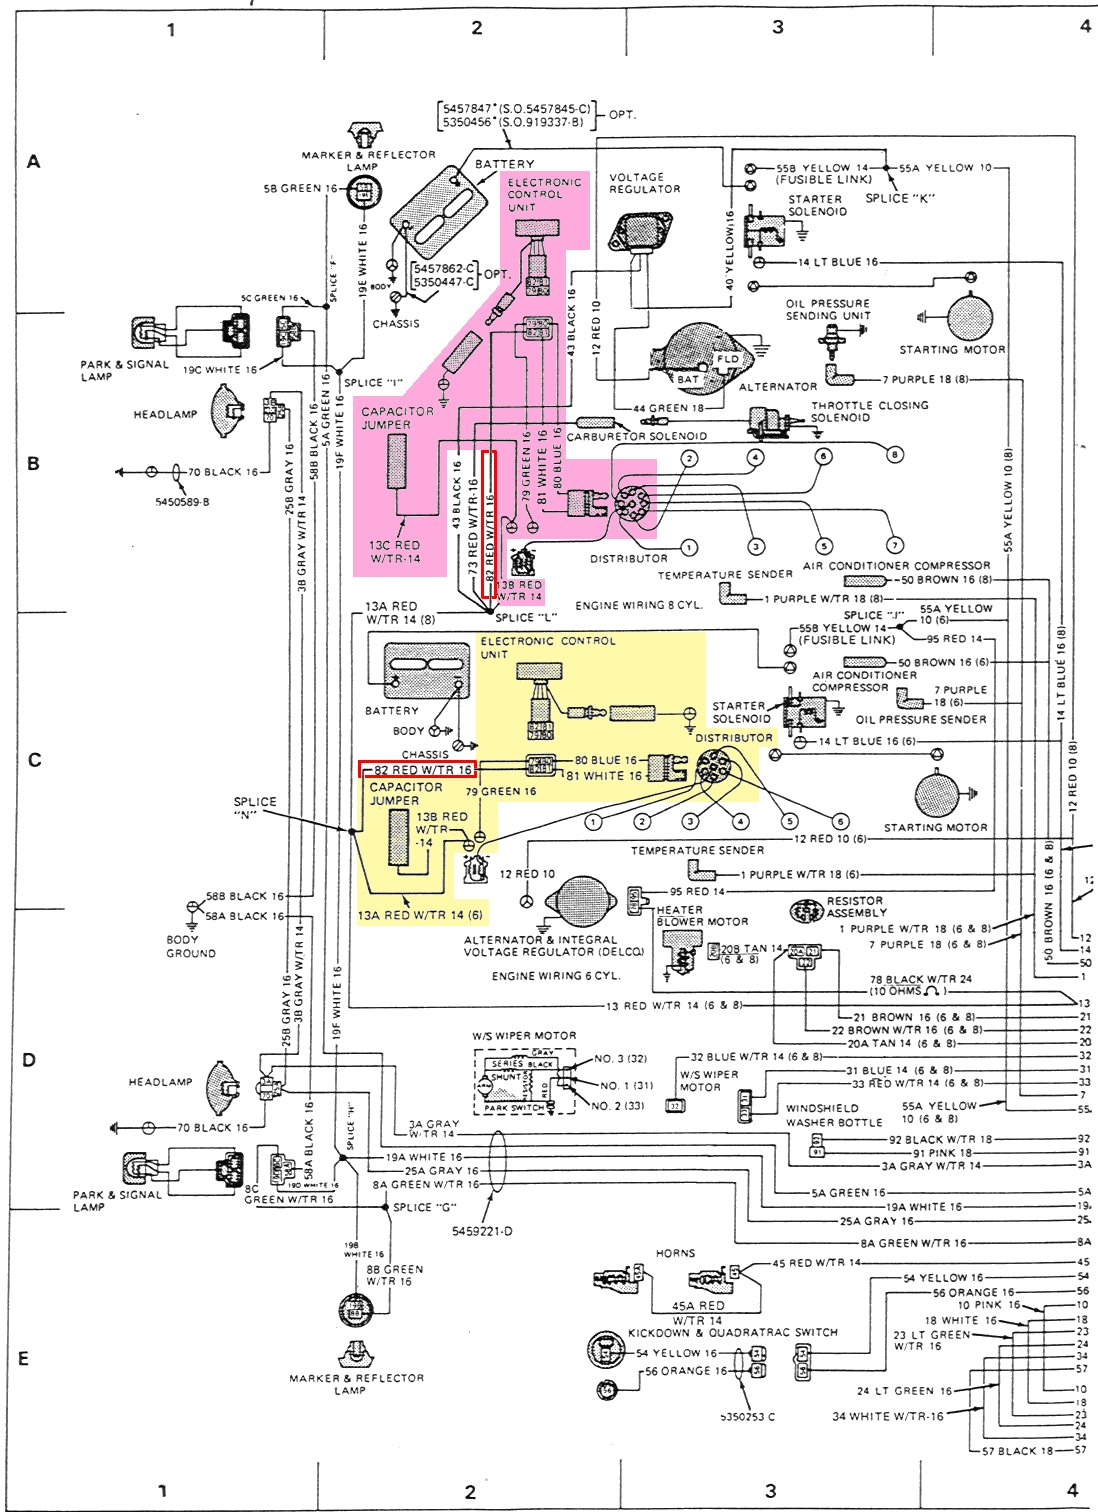 Wag Tsm Ignition on Jeep Wagoneer Wiring Harness Diagram